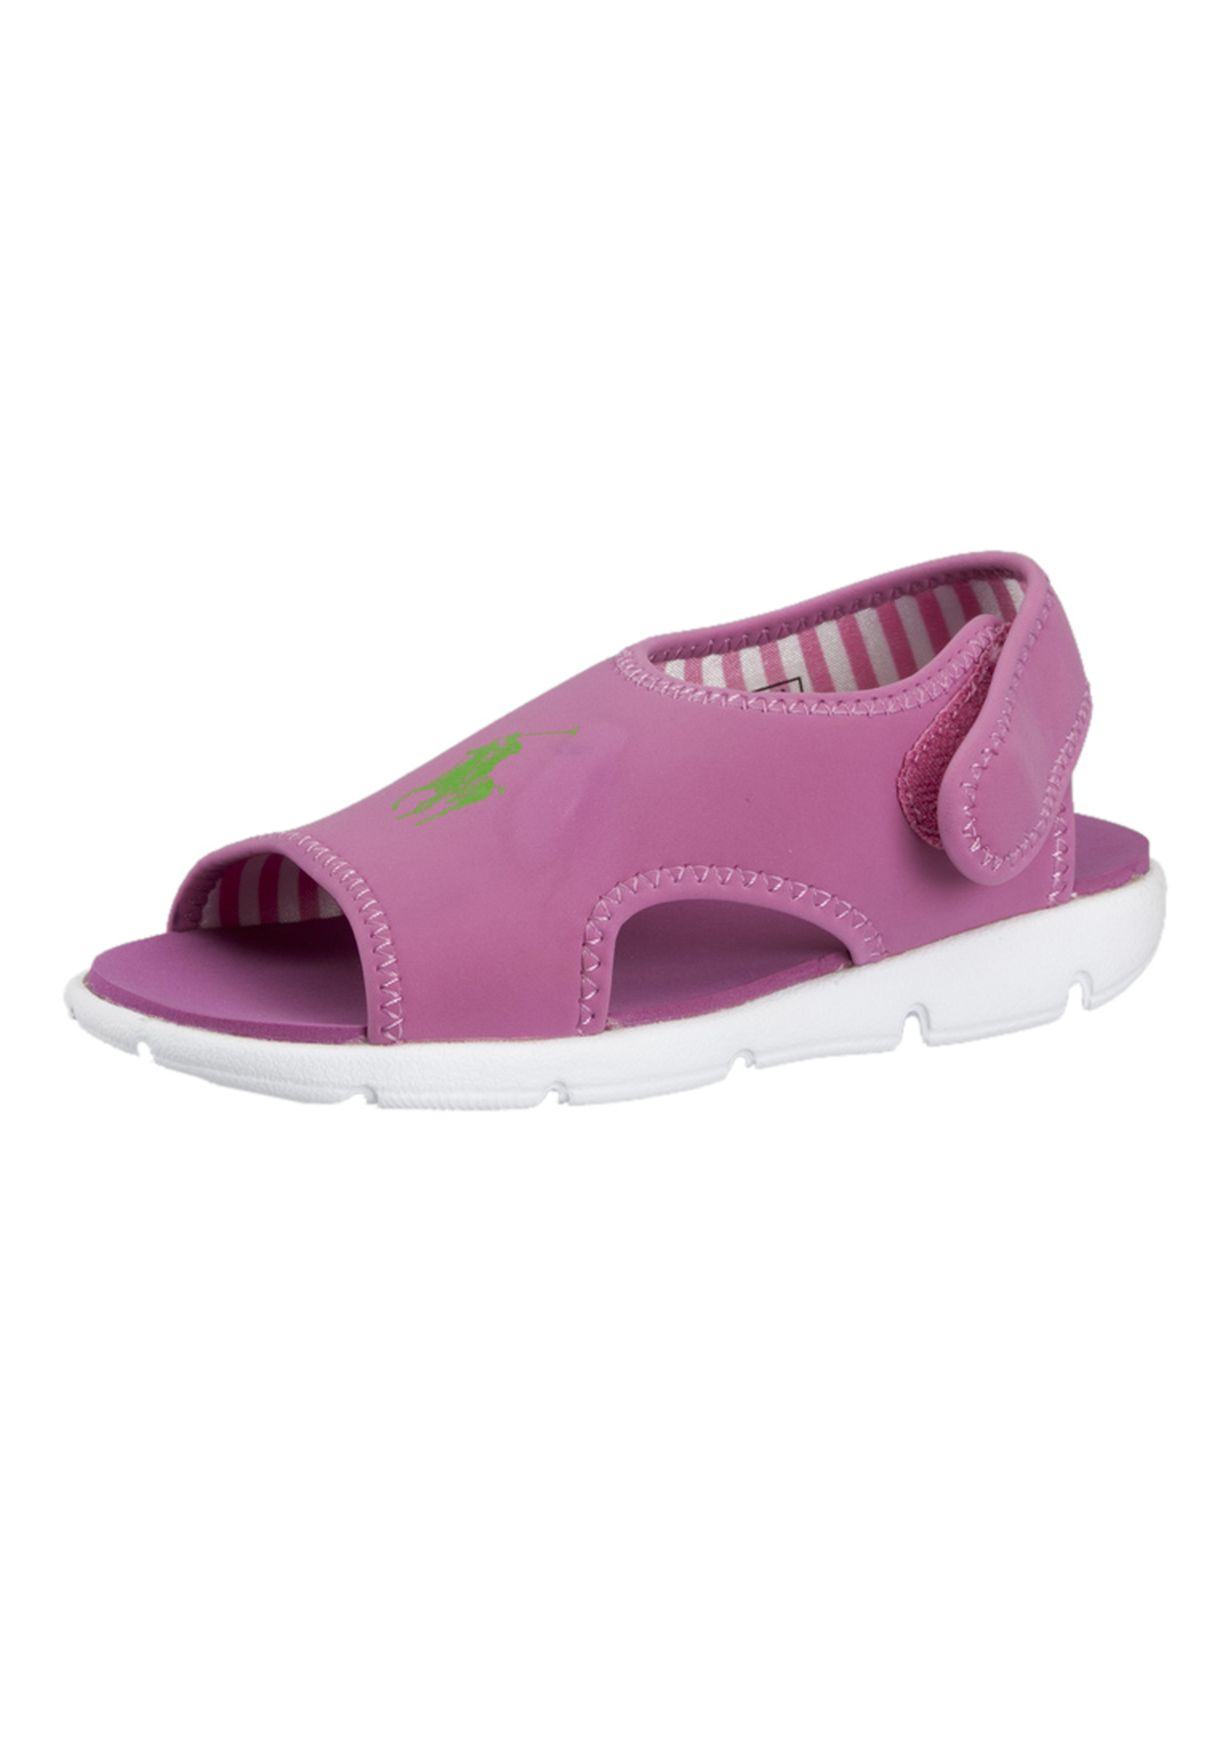 f70fd44c7655 Shop Polo Ralph Lauren pink Cove Open Toe Sandals 96691 for Kids in ...